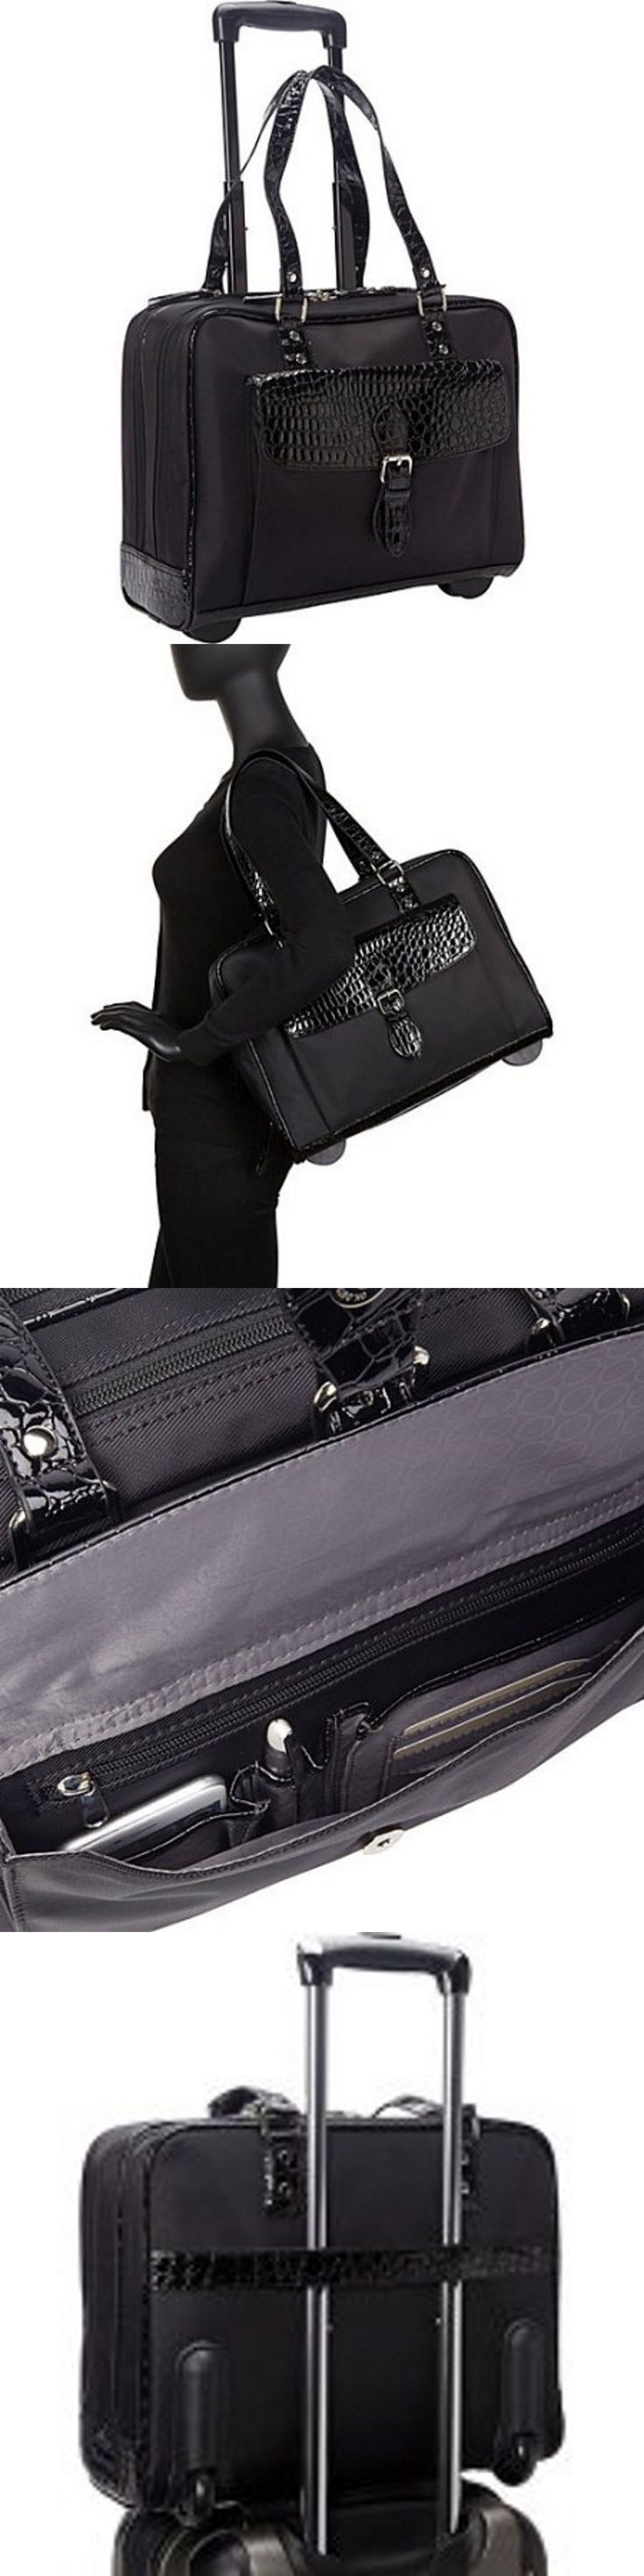 Briefcases and Laptop Bags 169293: Rolling Laptop Bag Tote Travel Briefcase Women Black Nylon Computer Wheeled Case -> BUY IT NOW ONLY: $90.99 on eBay!